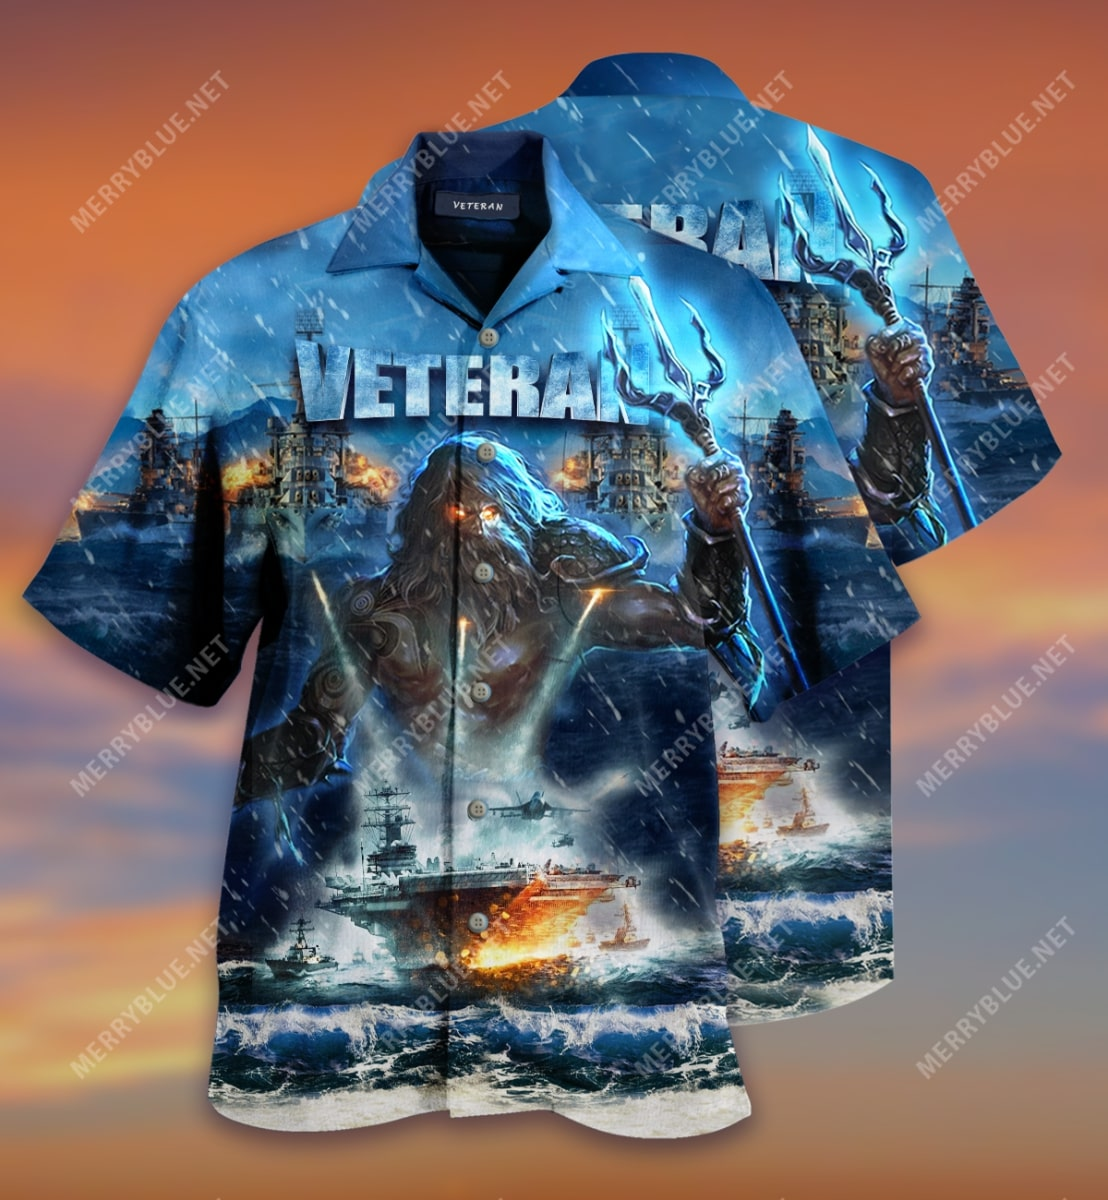 united state veterans on the ocean all over printed hawaiian shirt 2